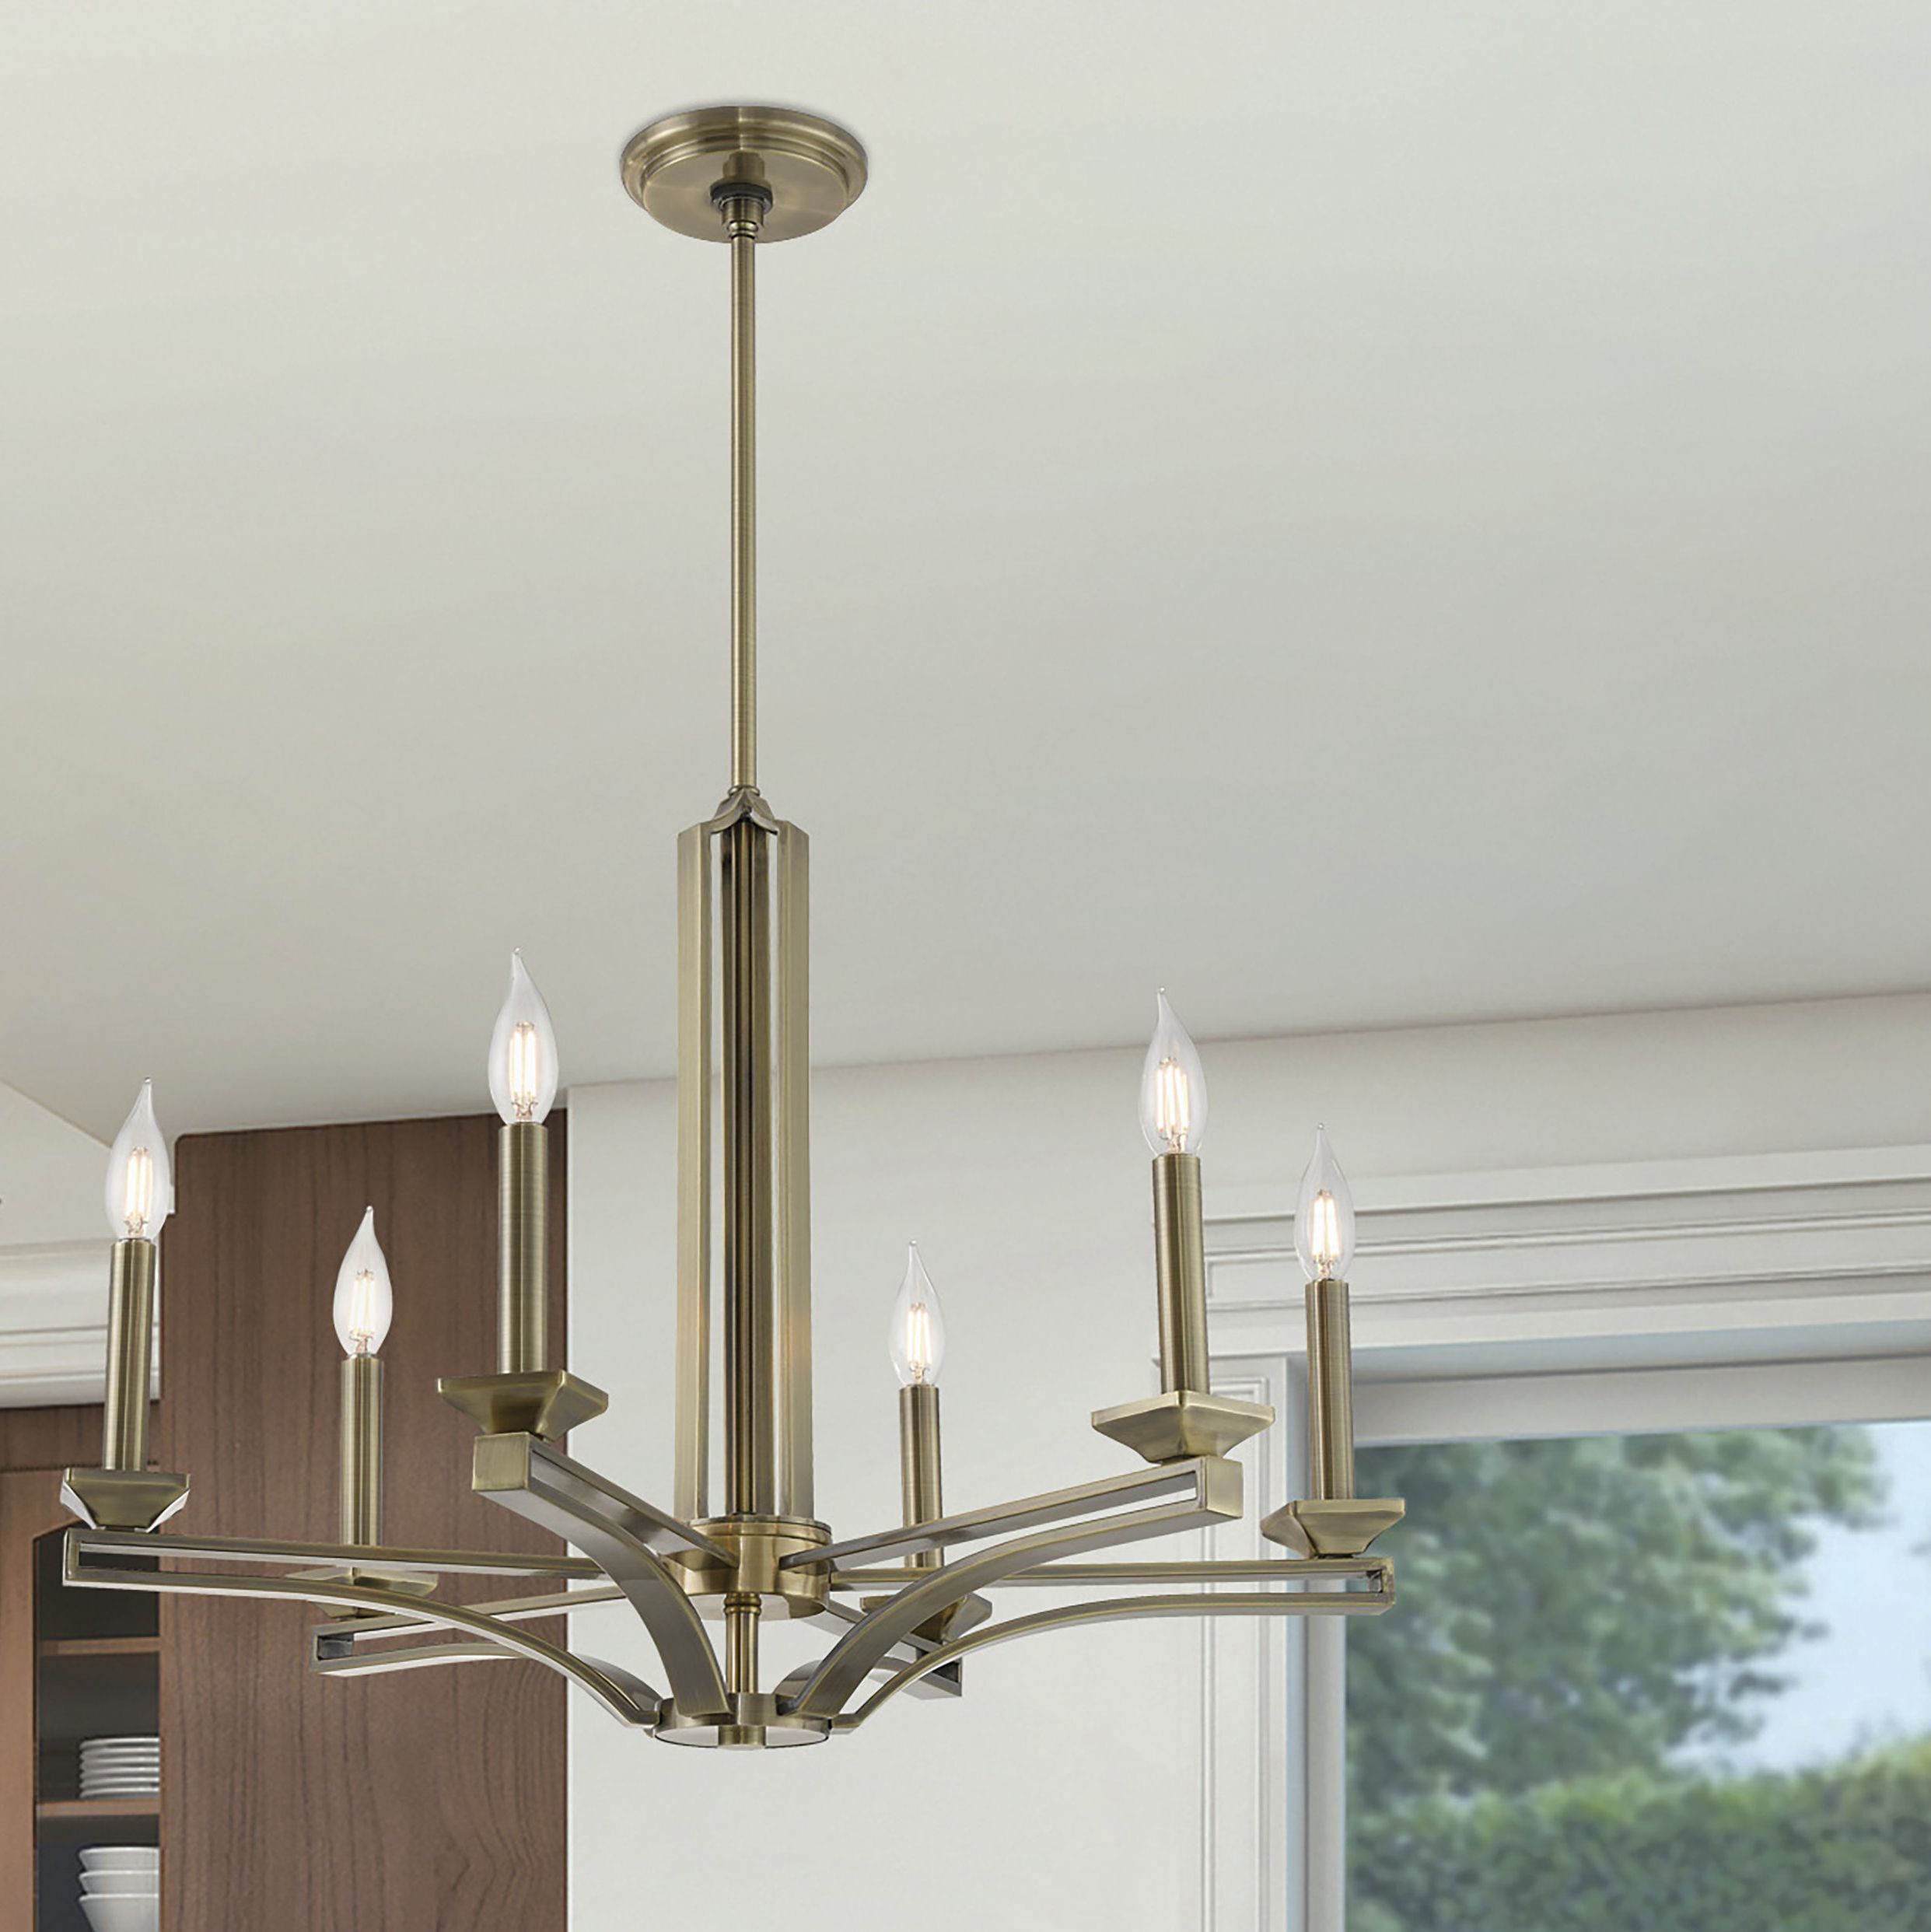 Dedham 6-Light Candle Style Chandelier throughout Well-known Hesse 5 Light Candle-Style Chandeliers